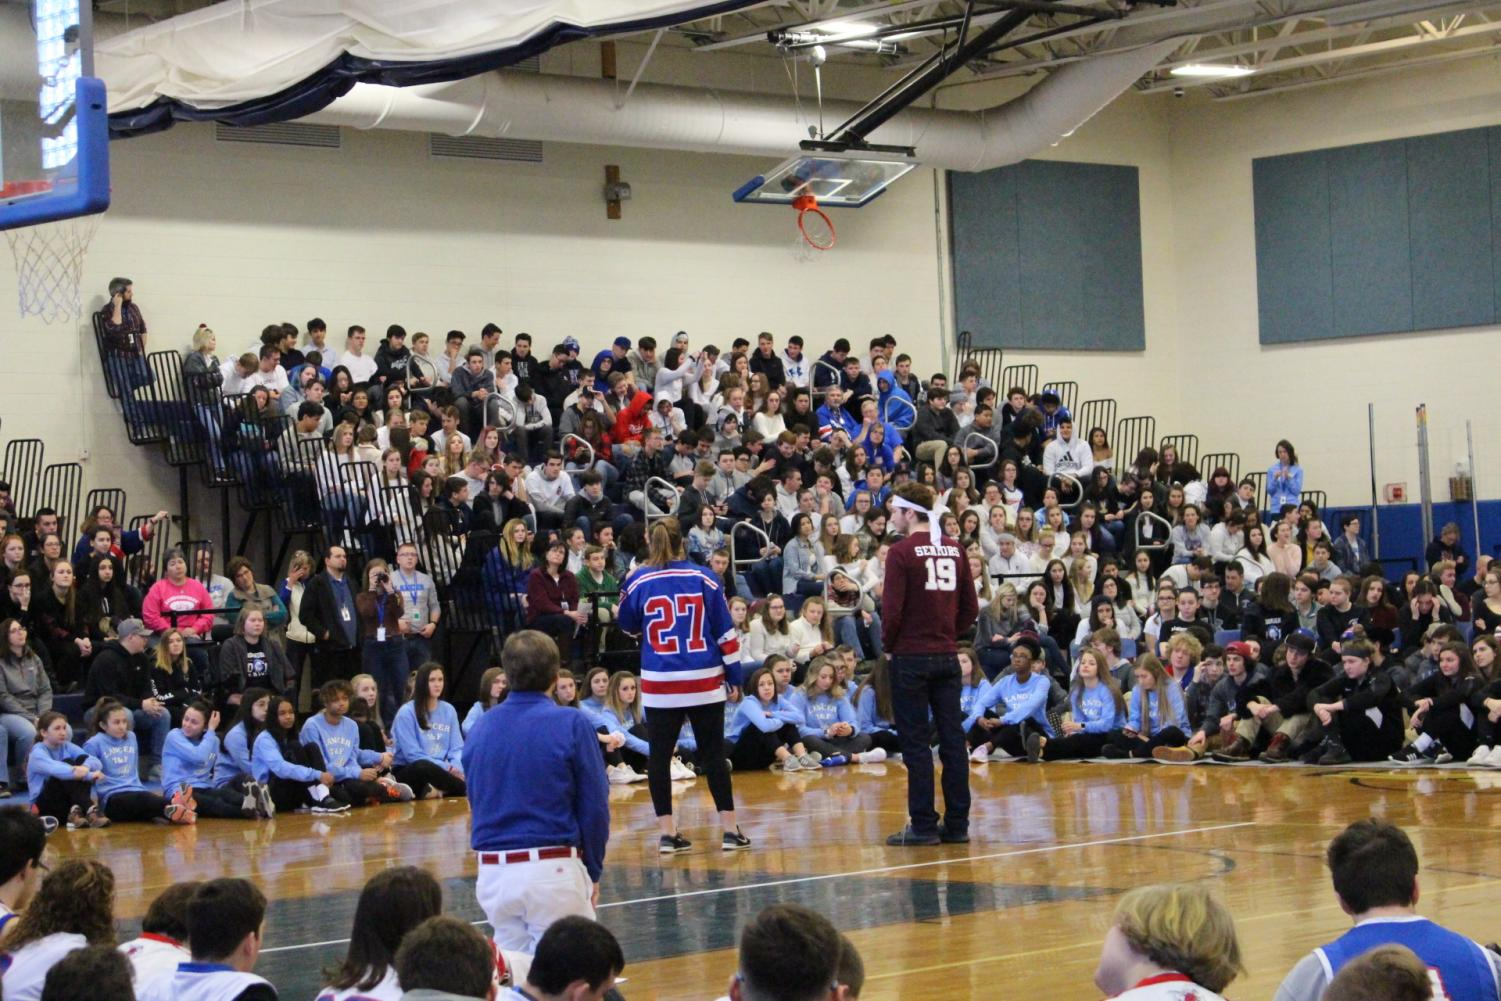 Student Council President Harry Feig and senior class President Liz Iaconis address Lancers during the winter 2019 pep rally.